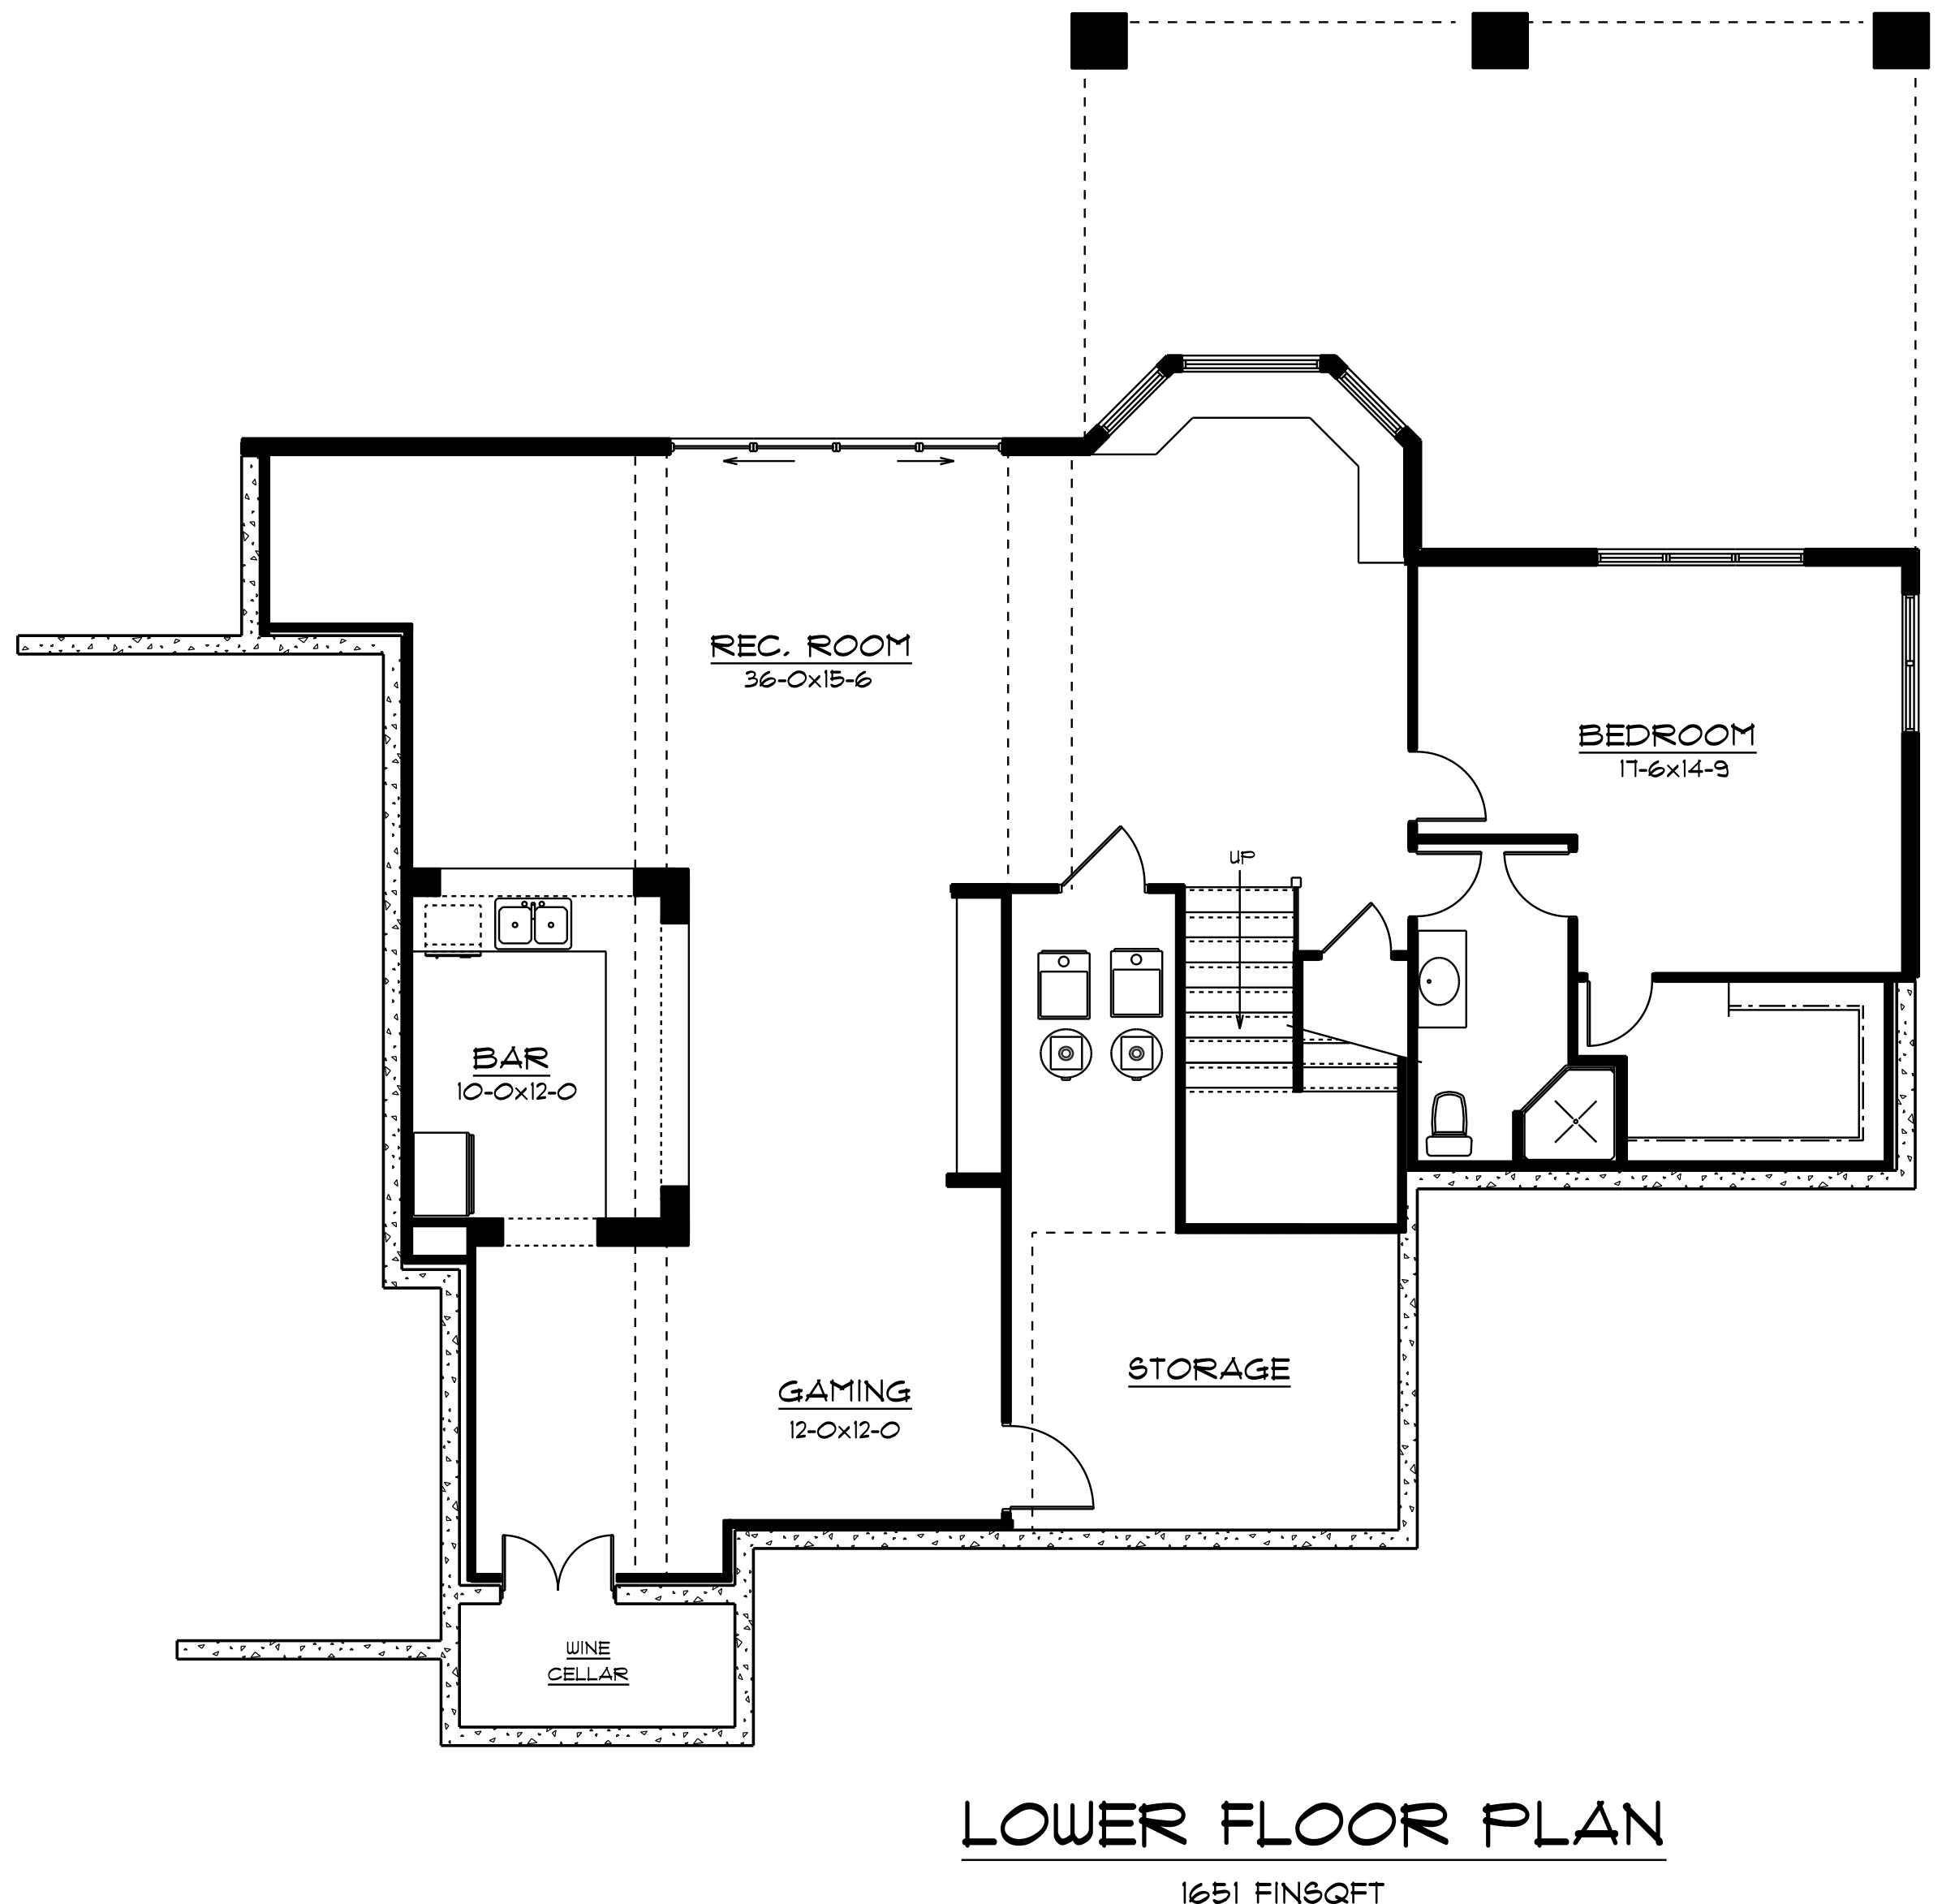 p3-the-cottage-lower-floor-r-c